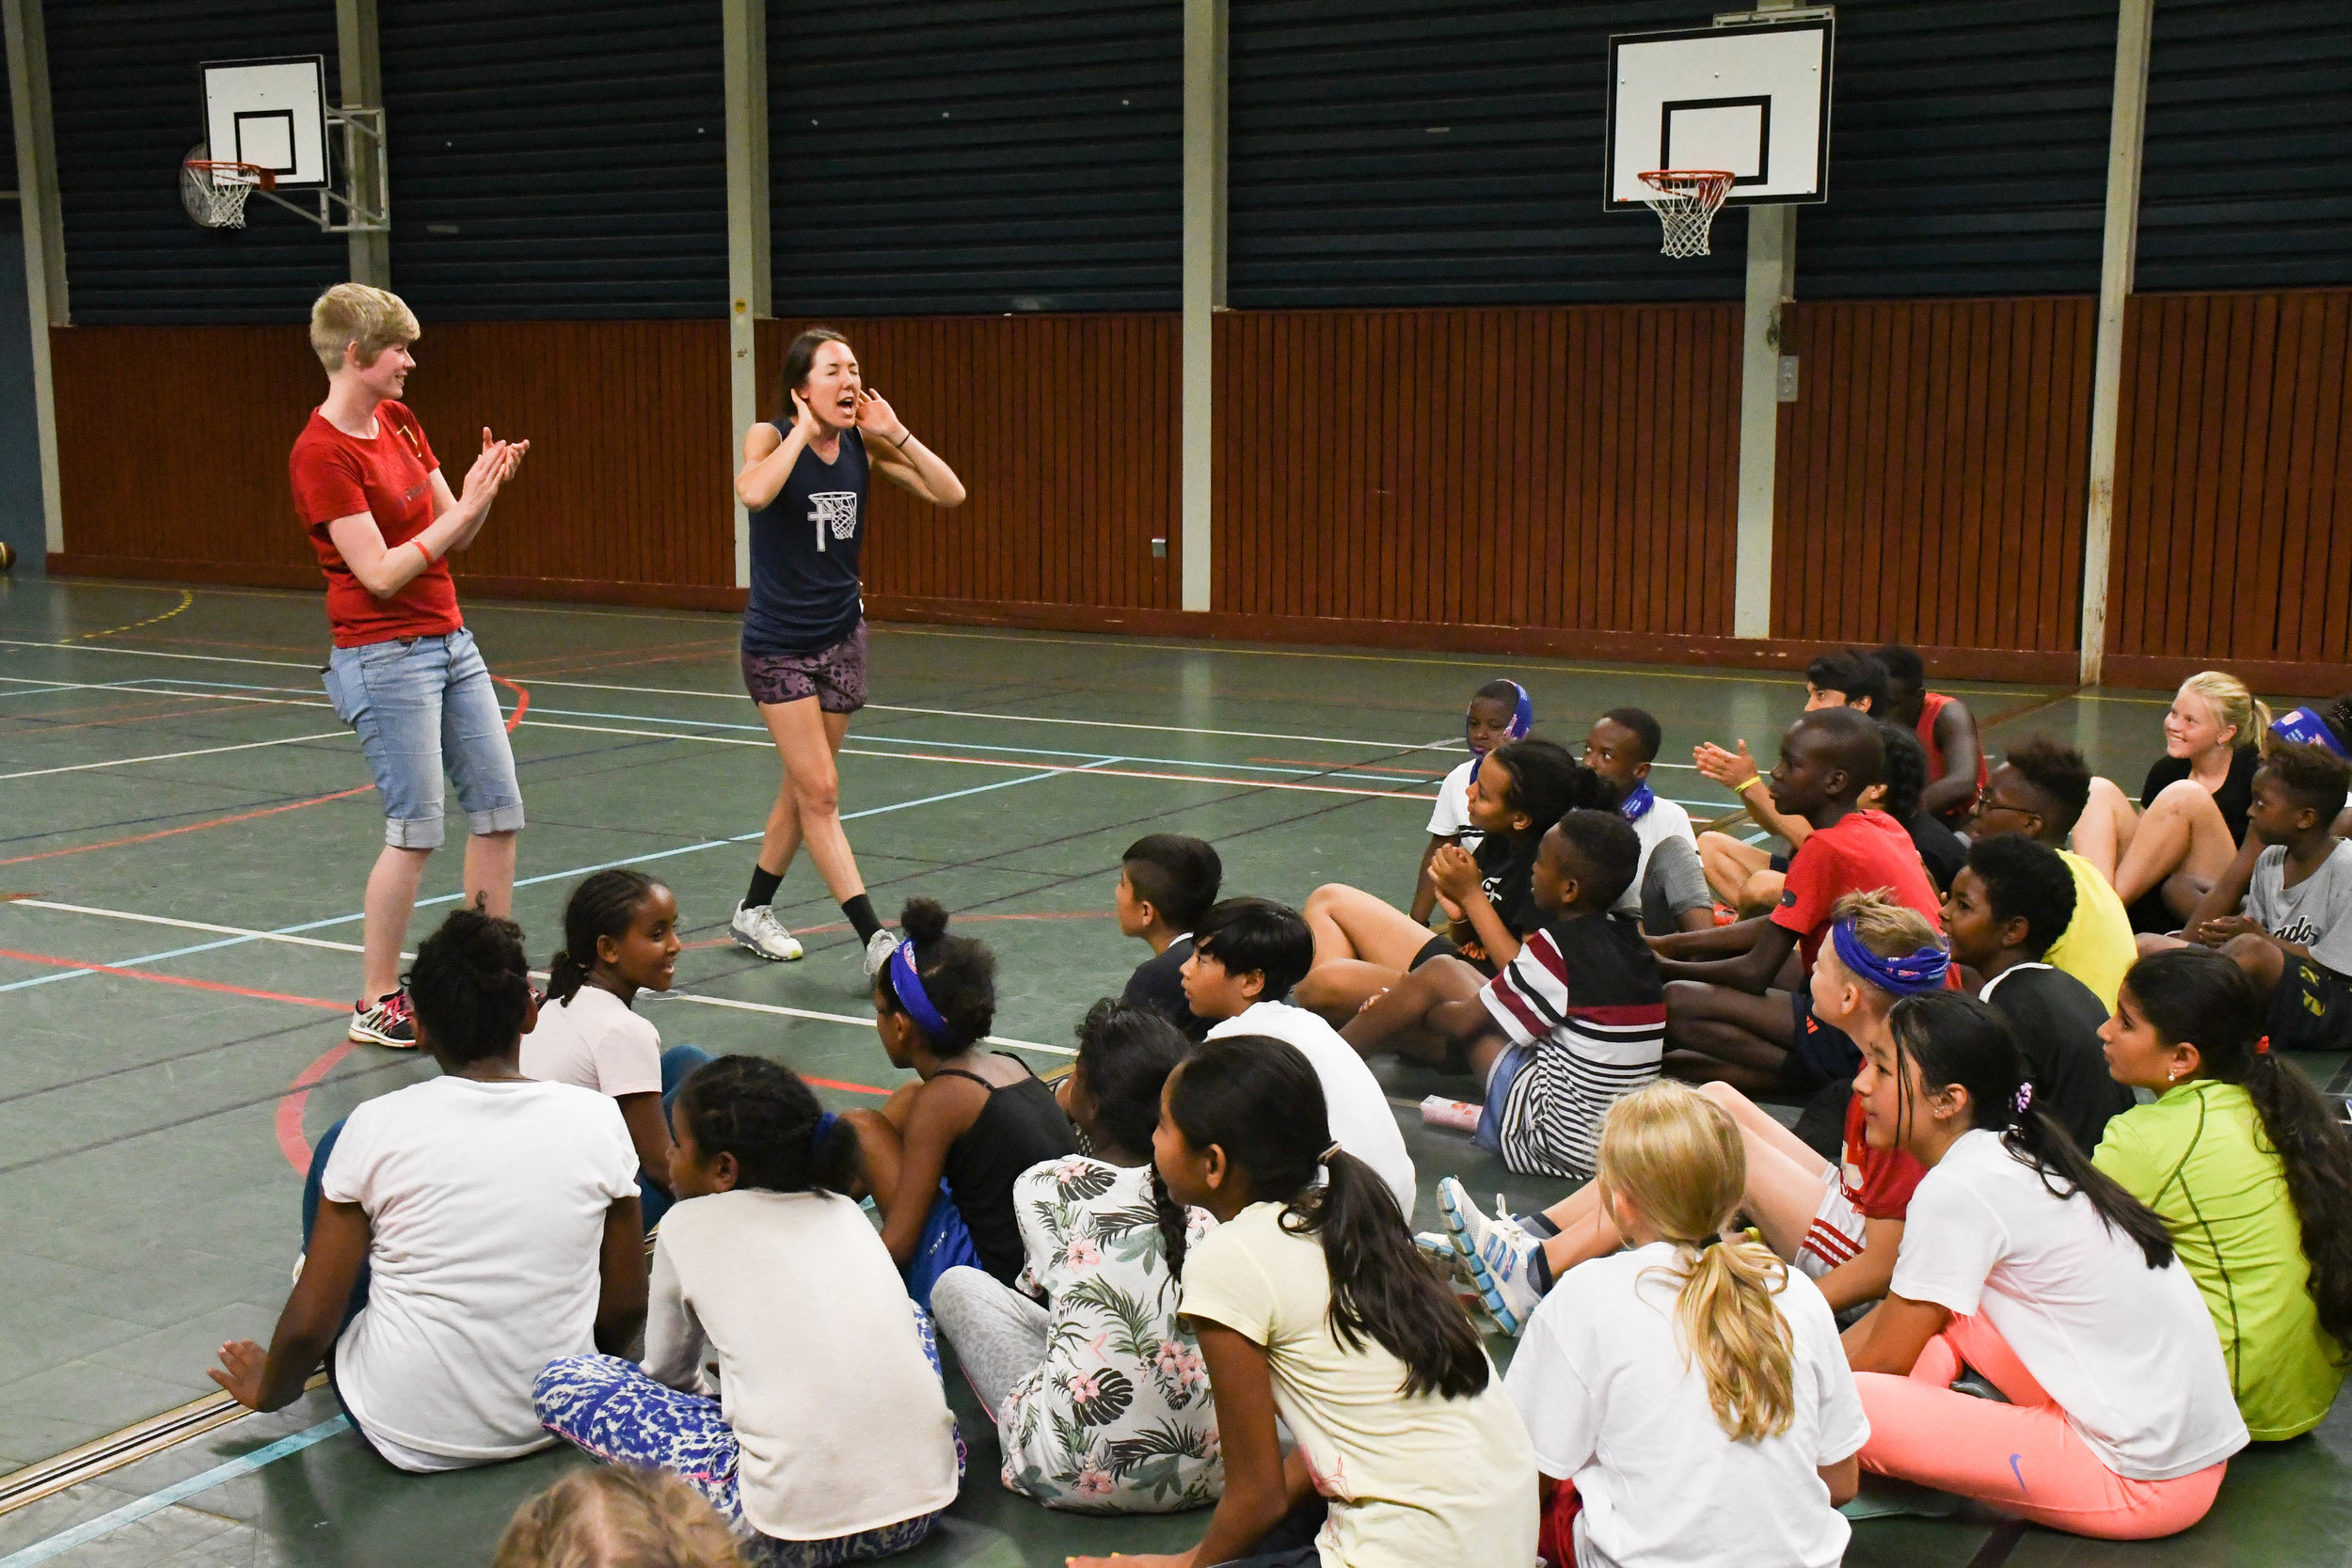 Women's tour leader Cassie Bates pumping up our campers at  our hoop camp in Hammarstrand, Sweden.